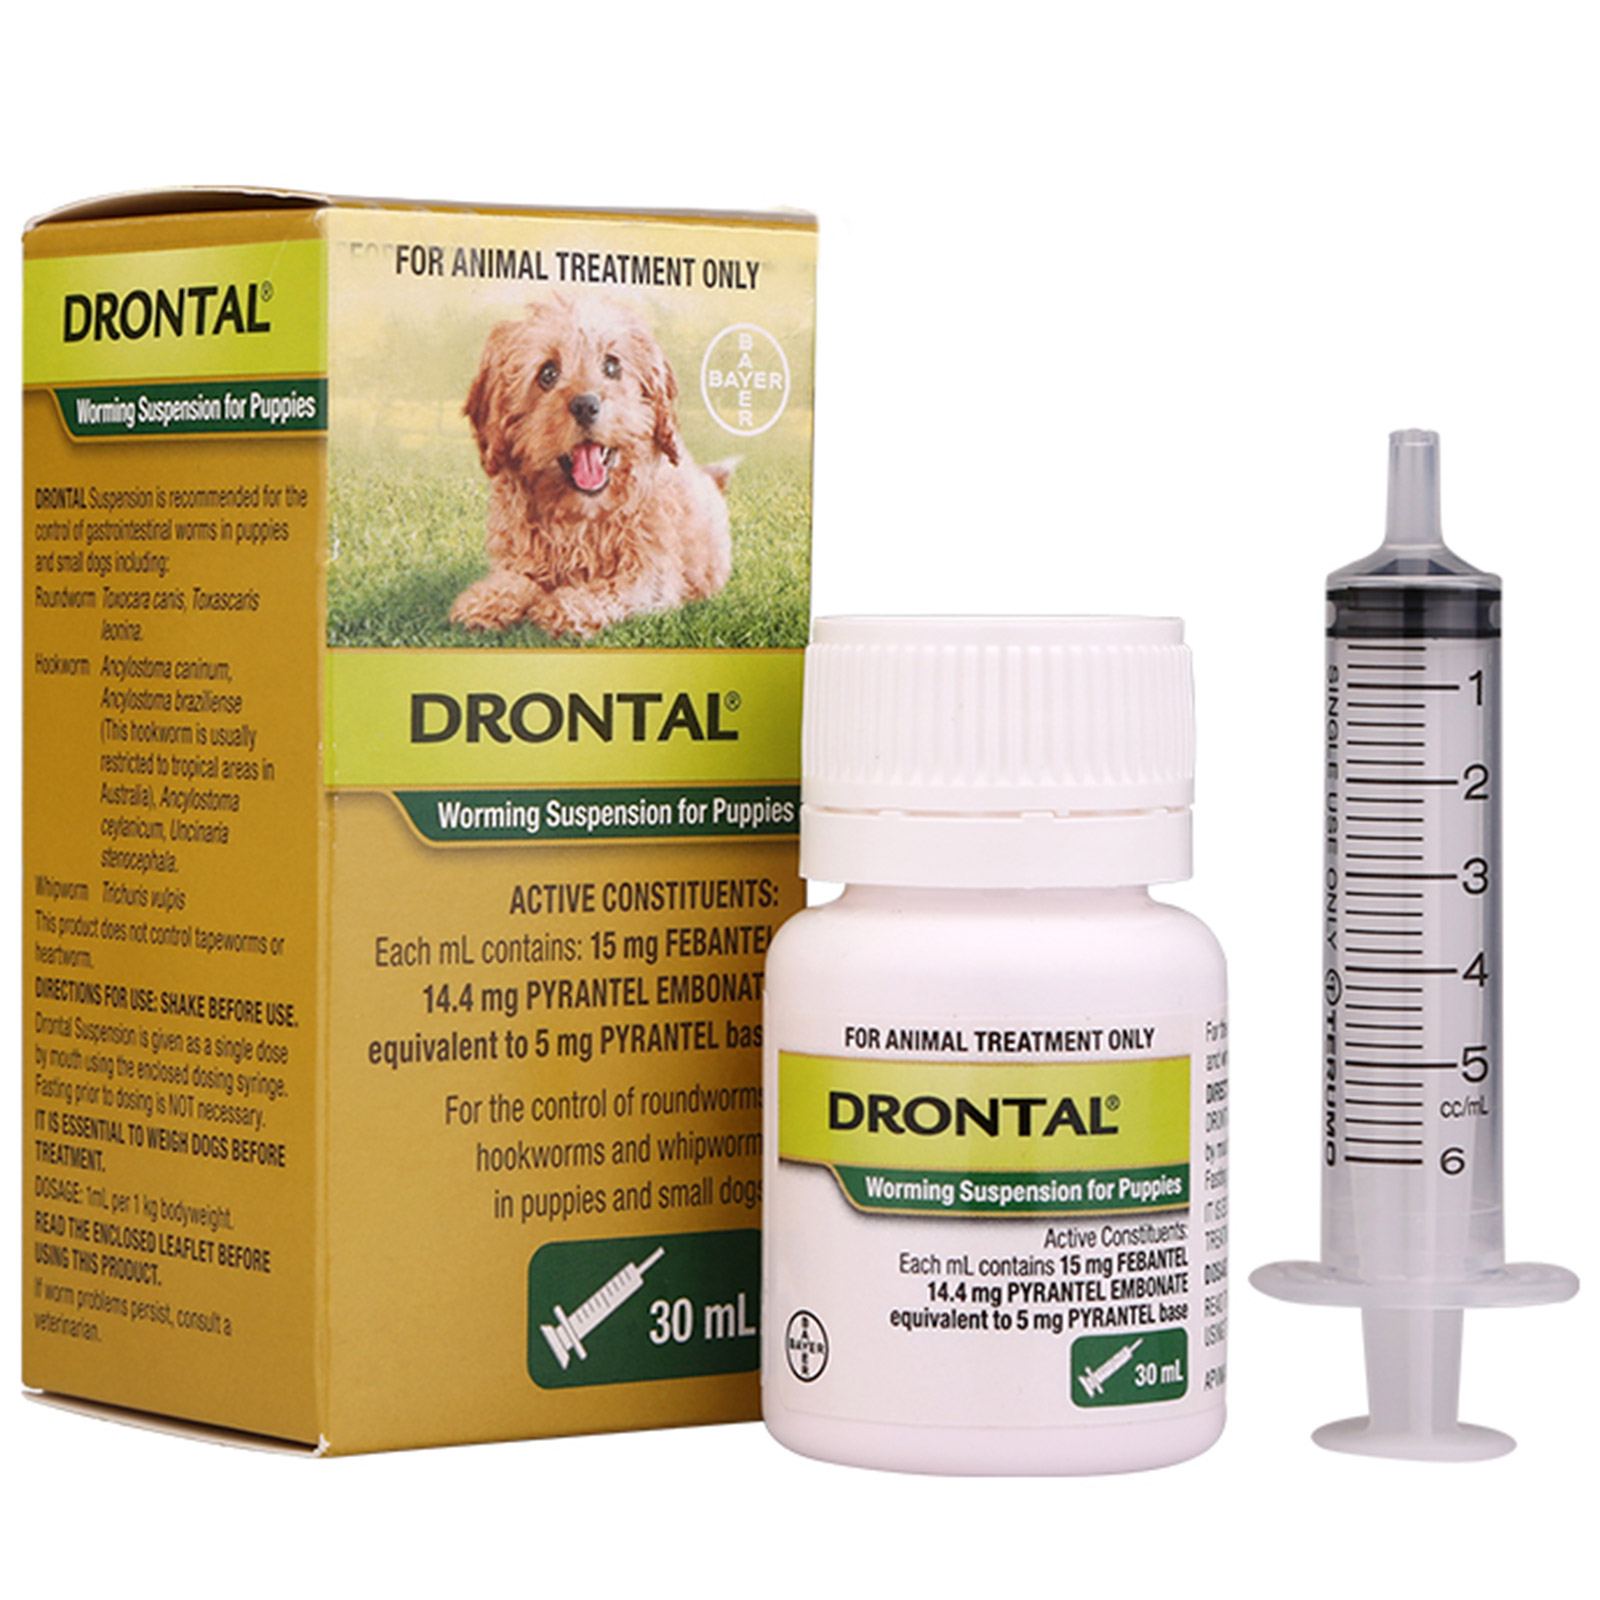 Drontal Worming Suspension Puppies For Dogs 30ml 1767